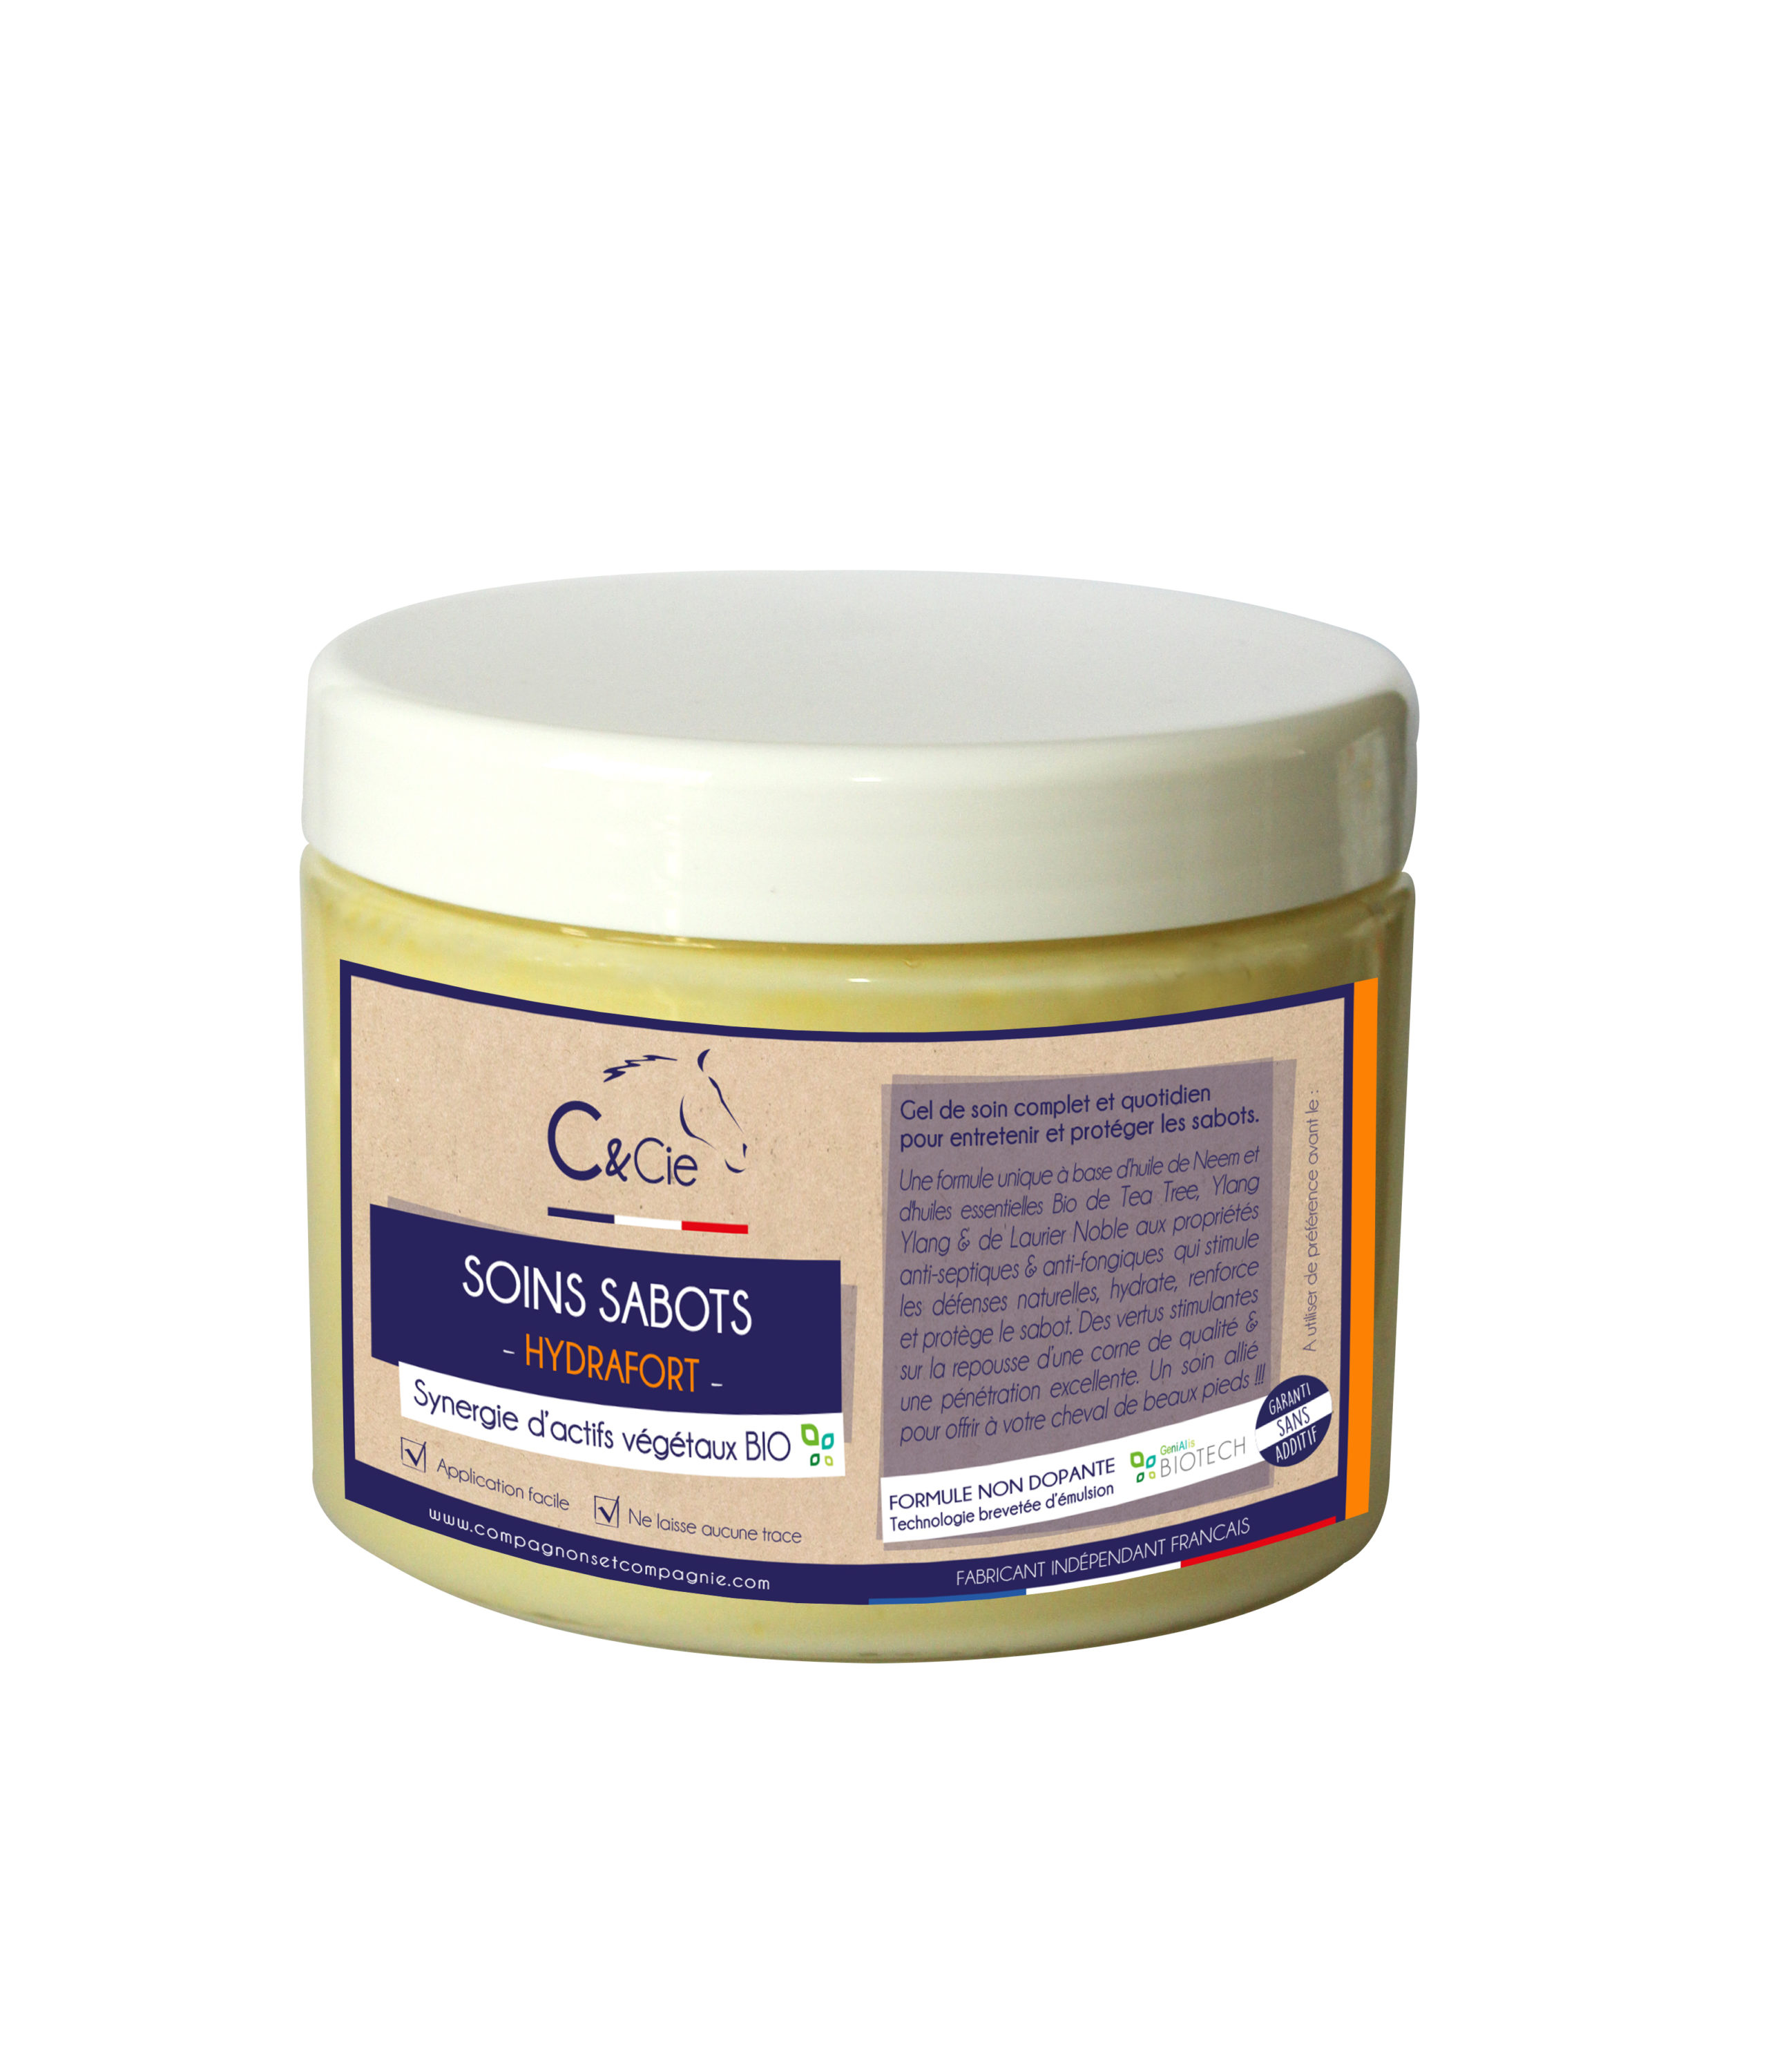 C&cie Hydrafort soin sabot qui hydrate et renforce_onguent naturel sans additif